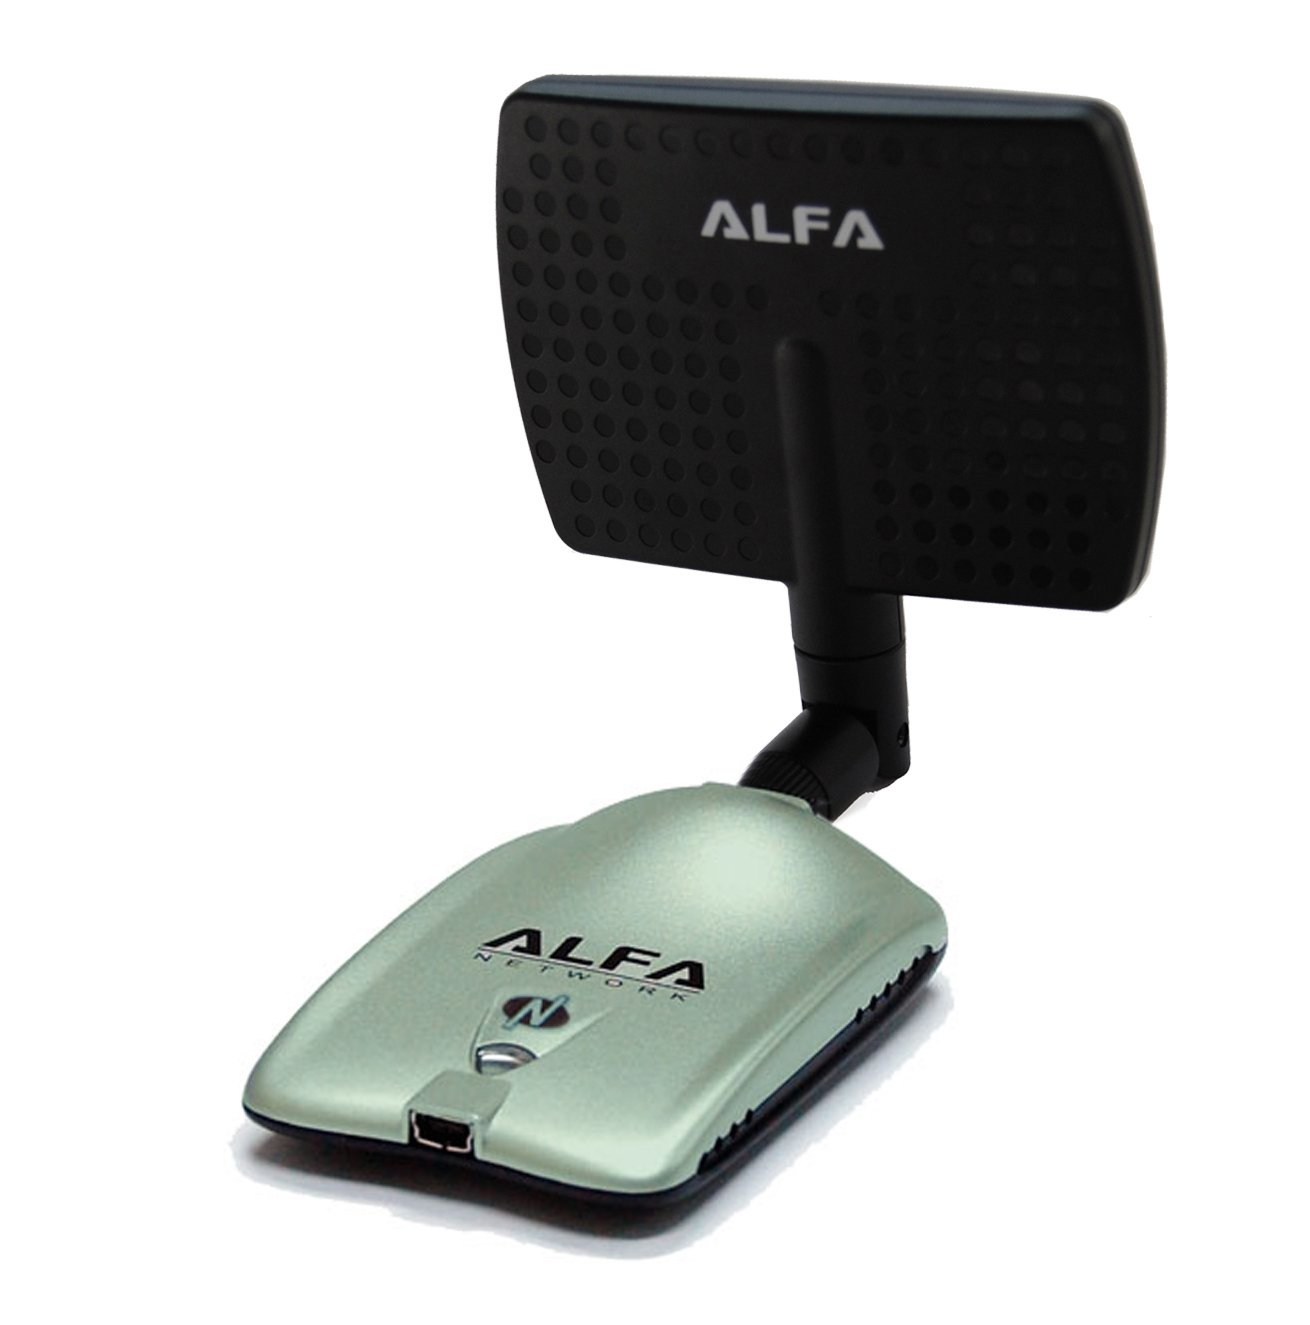 Alfa AWUS036NH 2000mW 2W 802.11g/n High Gain USB Wireless G / N Long Range  WiFi Network Adapter: Amazon.ca: Computers U0026 Tablets